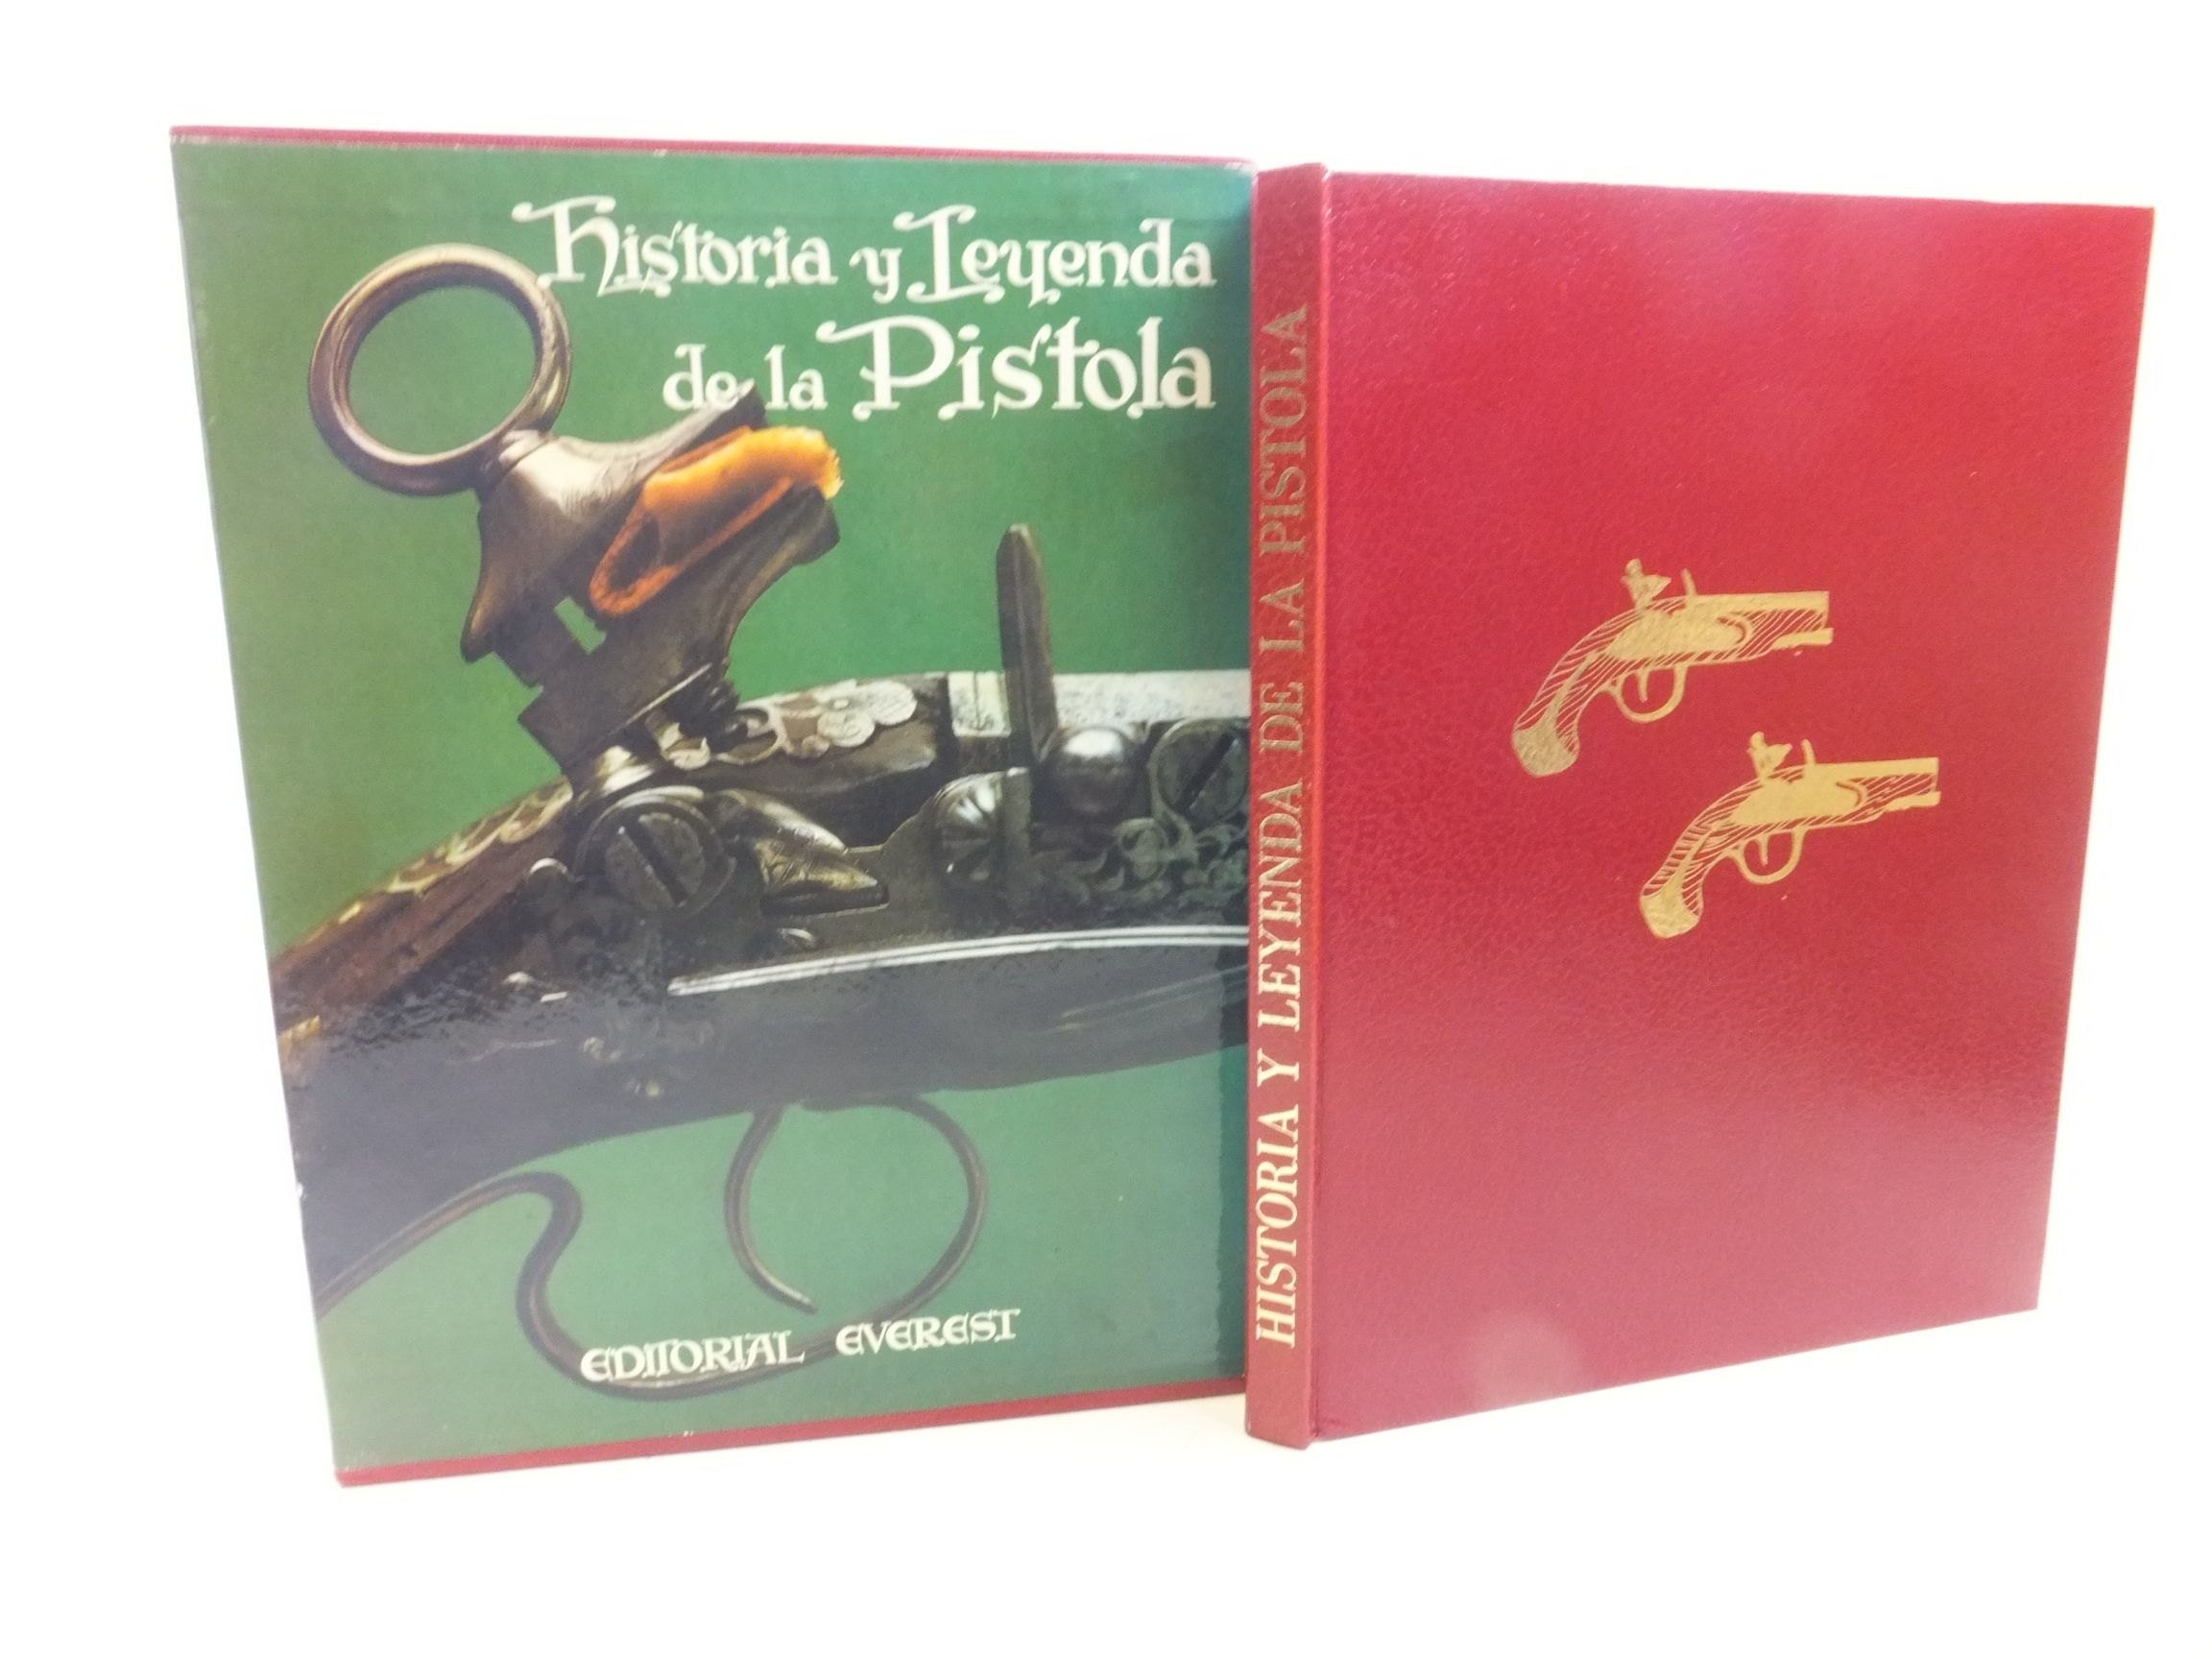 Photo of HISTORIA Y LEYENDA DE LA PISTOLA written by Echevarria, Jose Miguel published by Editorial Everest (STOCK CODE: 2118556)  for sale by Stella & Rose's Books